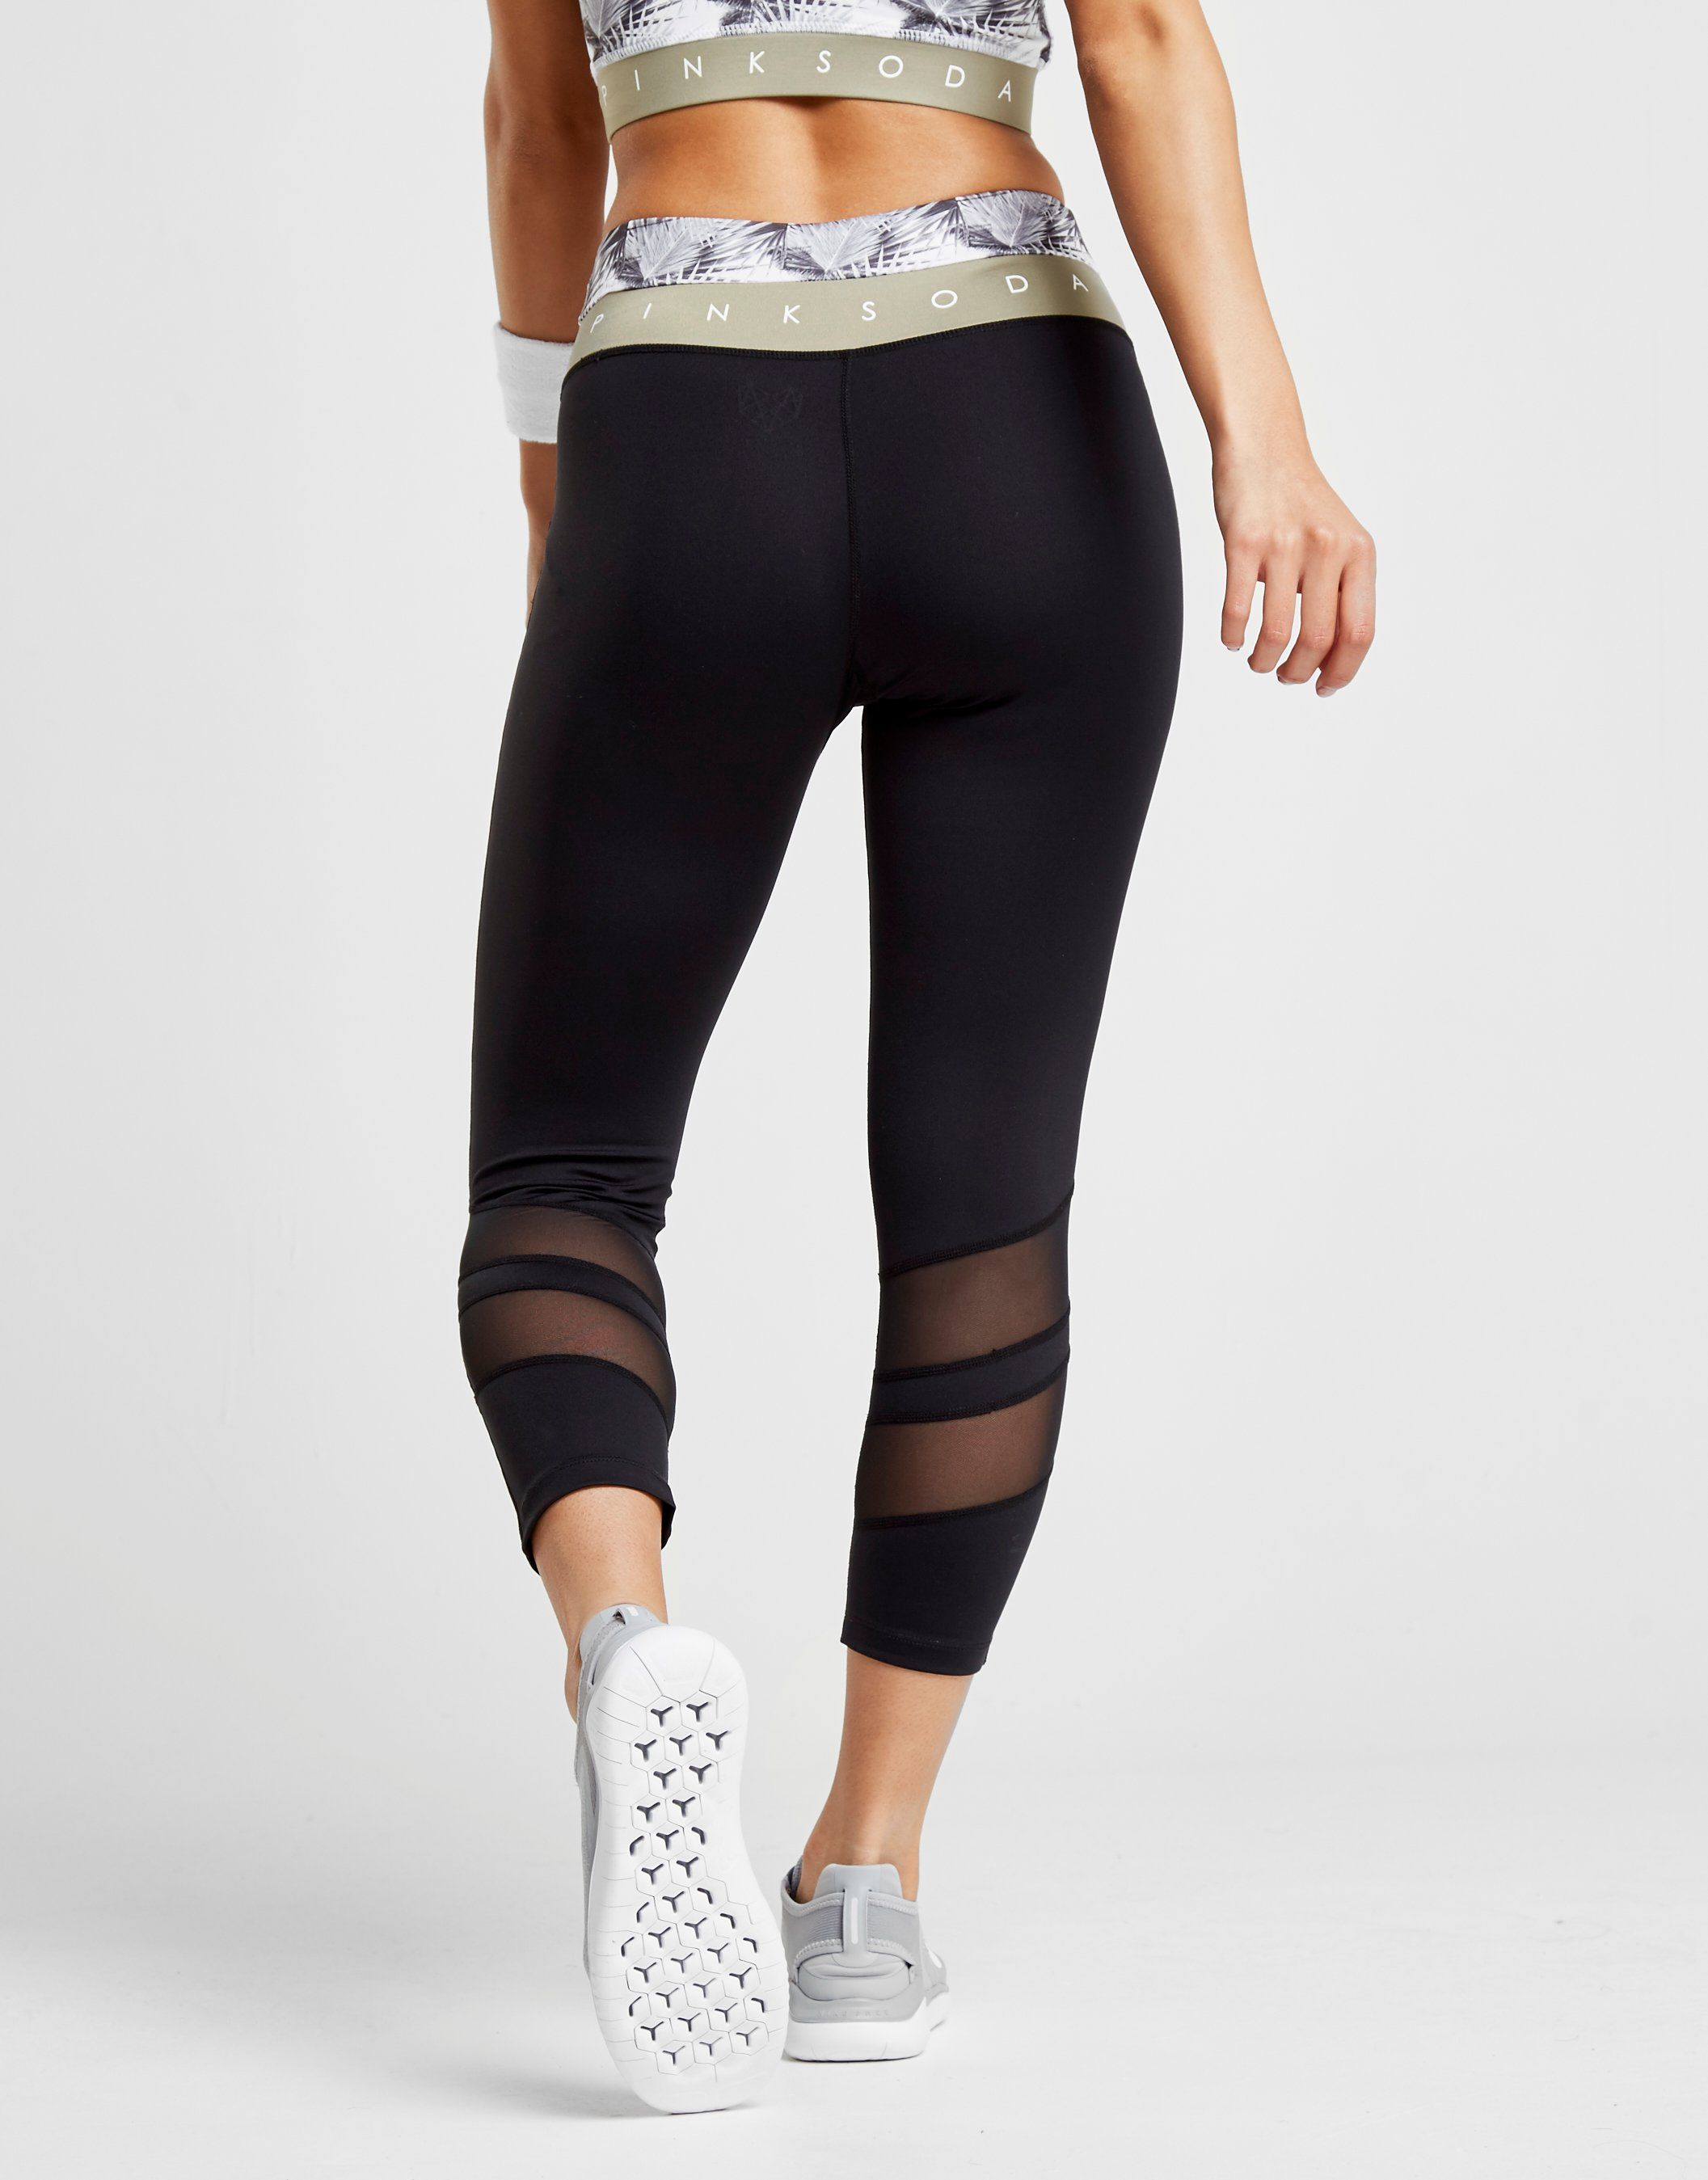 Pink Soda Sport Palm Panel Capri Leggings